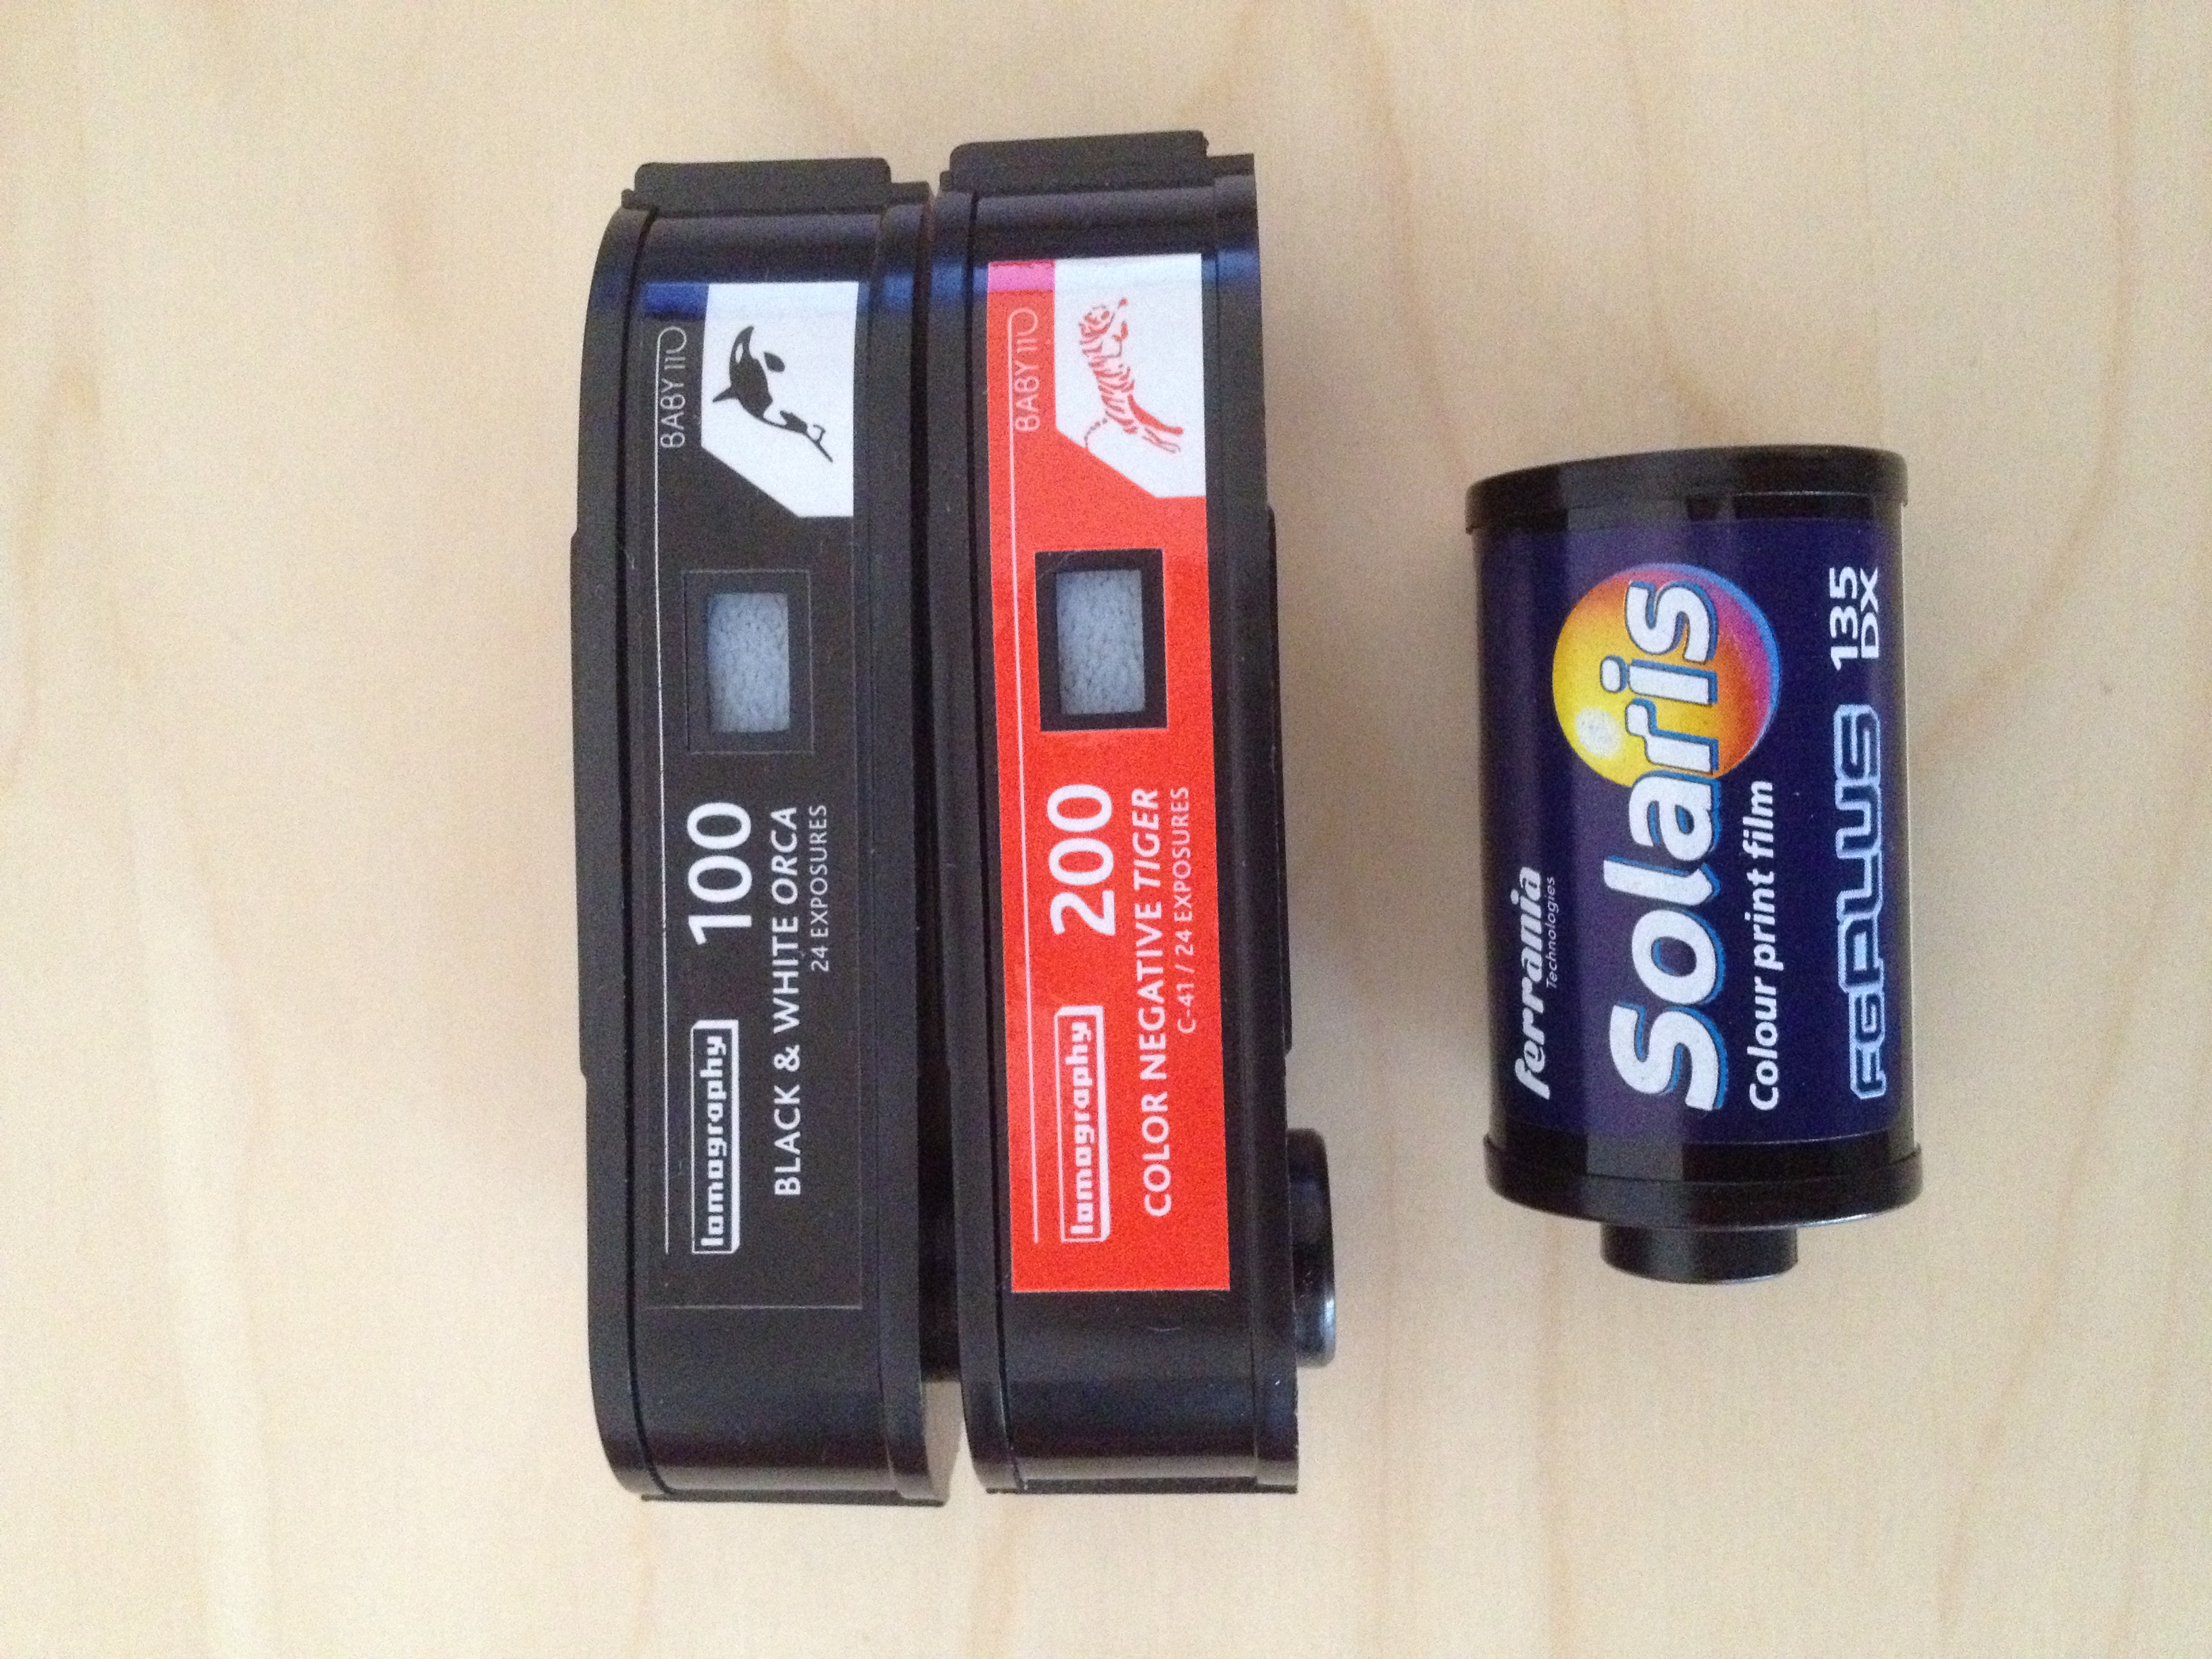 Cartridges of 110 and 135 format film.